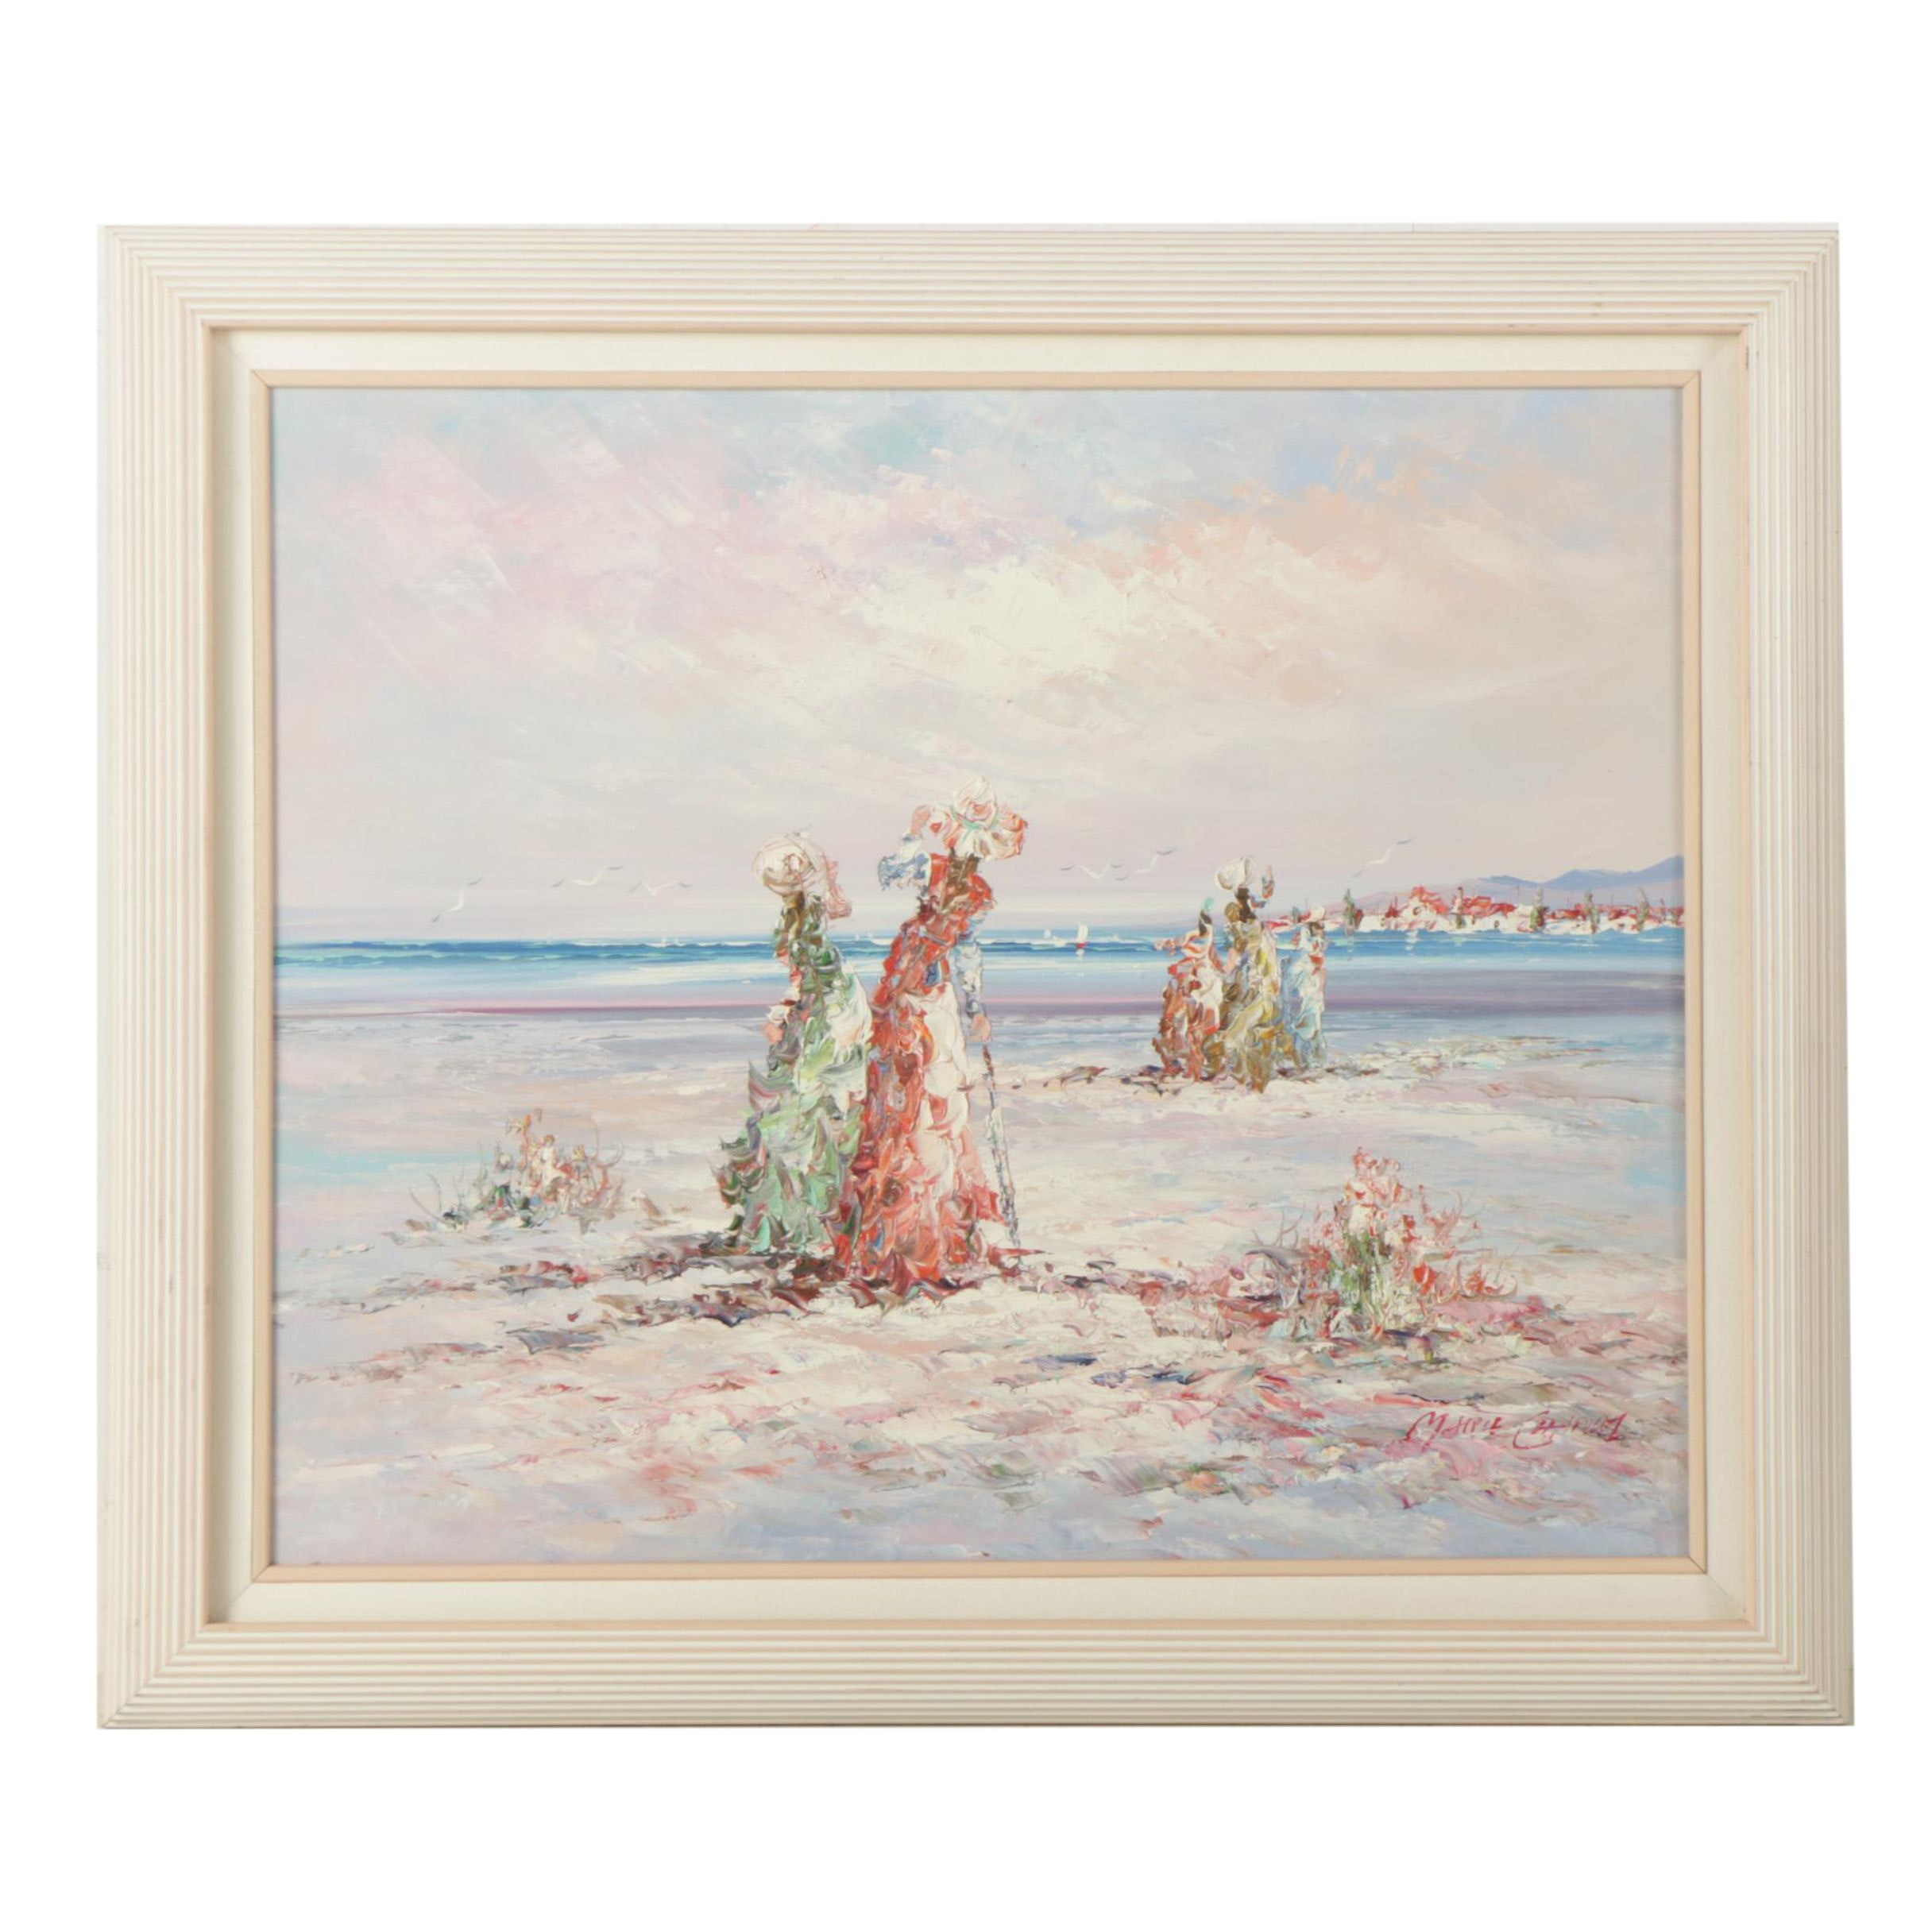 "Marie Charlot Oil Painting on Board ""Ladies by the Sea"""